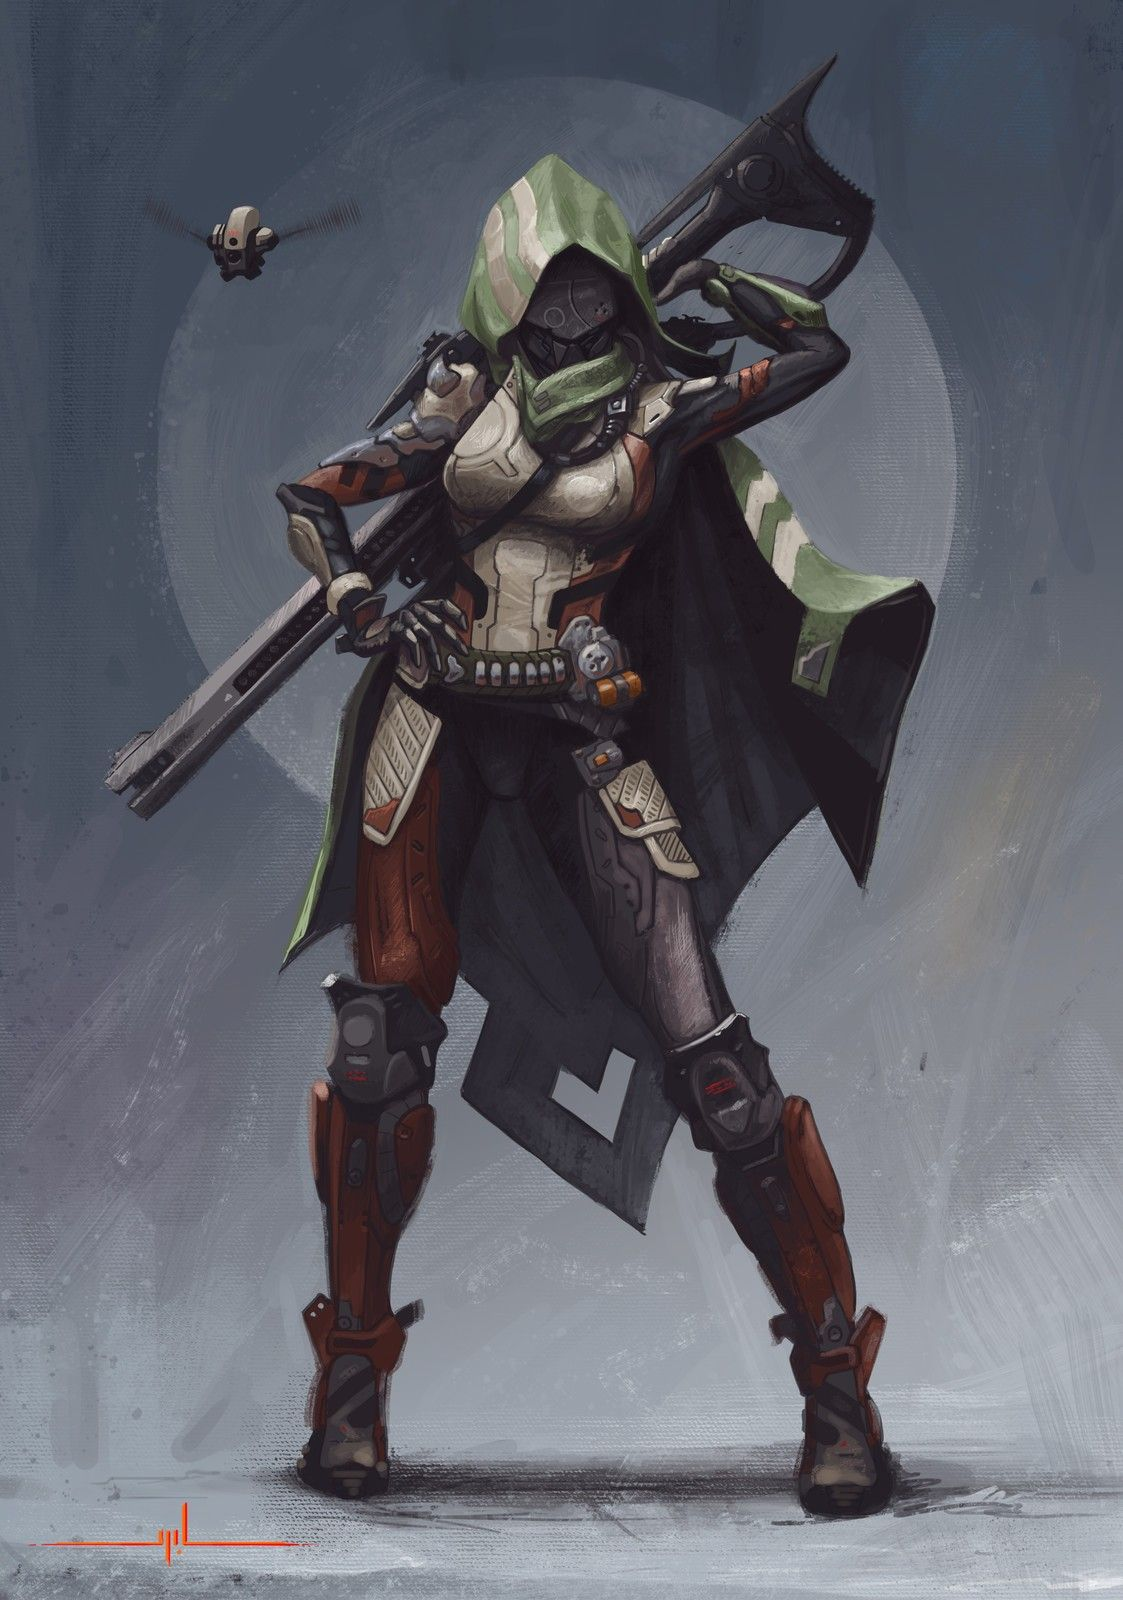 Pin by NavyEOD_24 on Scifi Character Art in 2020 Concept